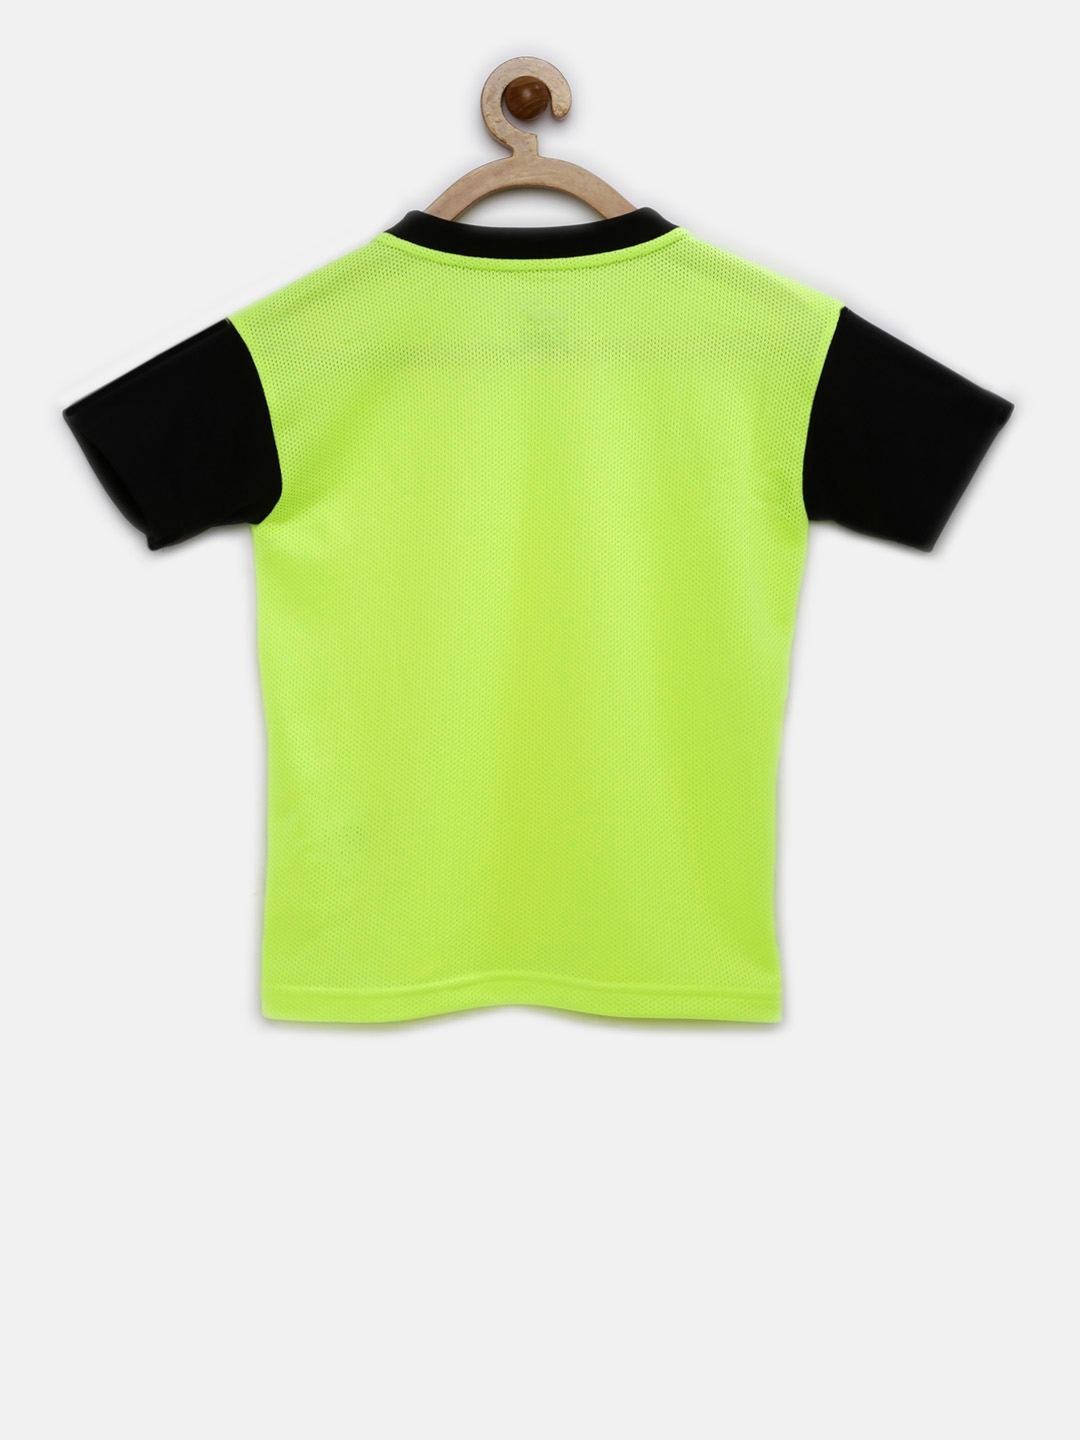 f8f244514b0b Buy Puma Boys Fluorescent Green Solid Round Neck T Shirt - Tshirts ...